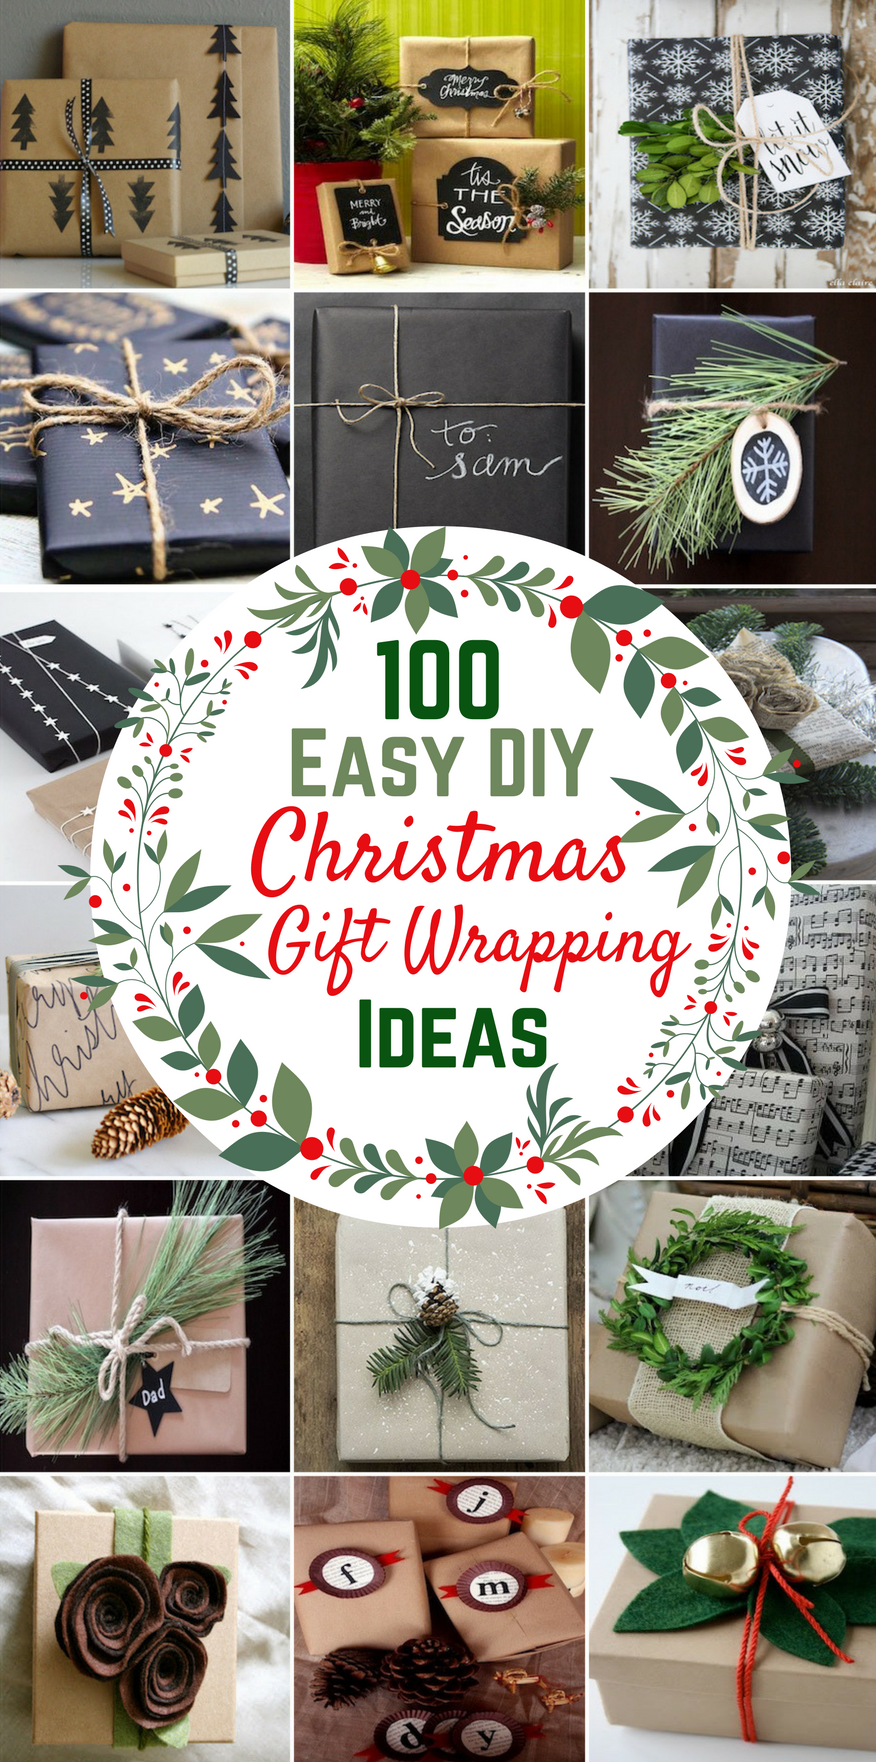 100 Easy Diy Christmas Gift Wrapping Ideas Prudent Penny